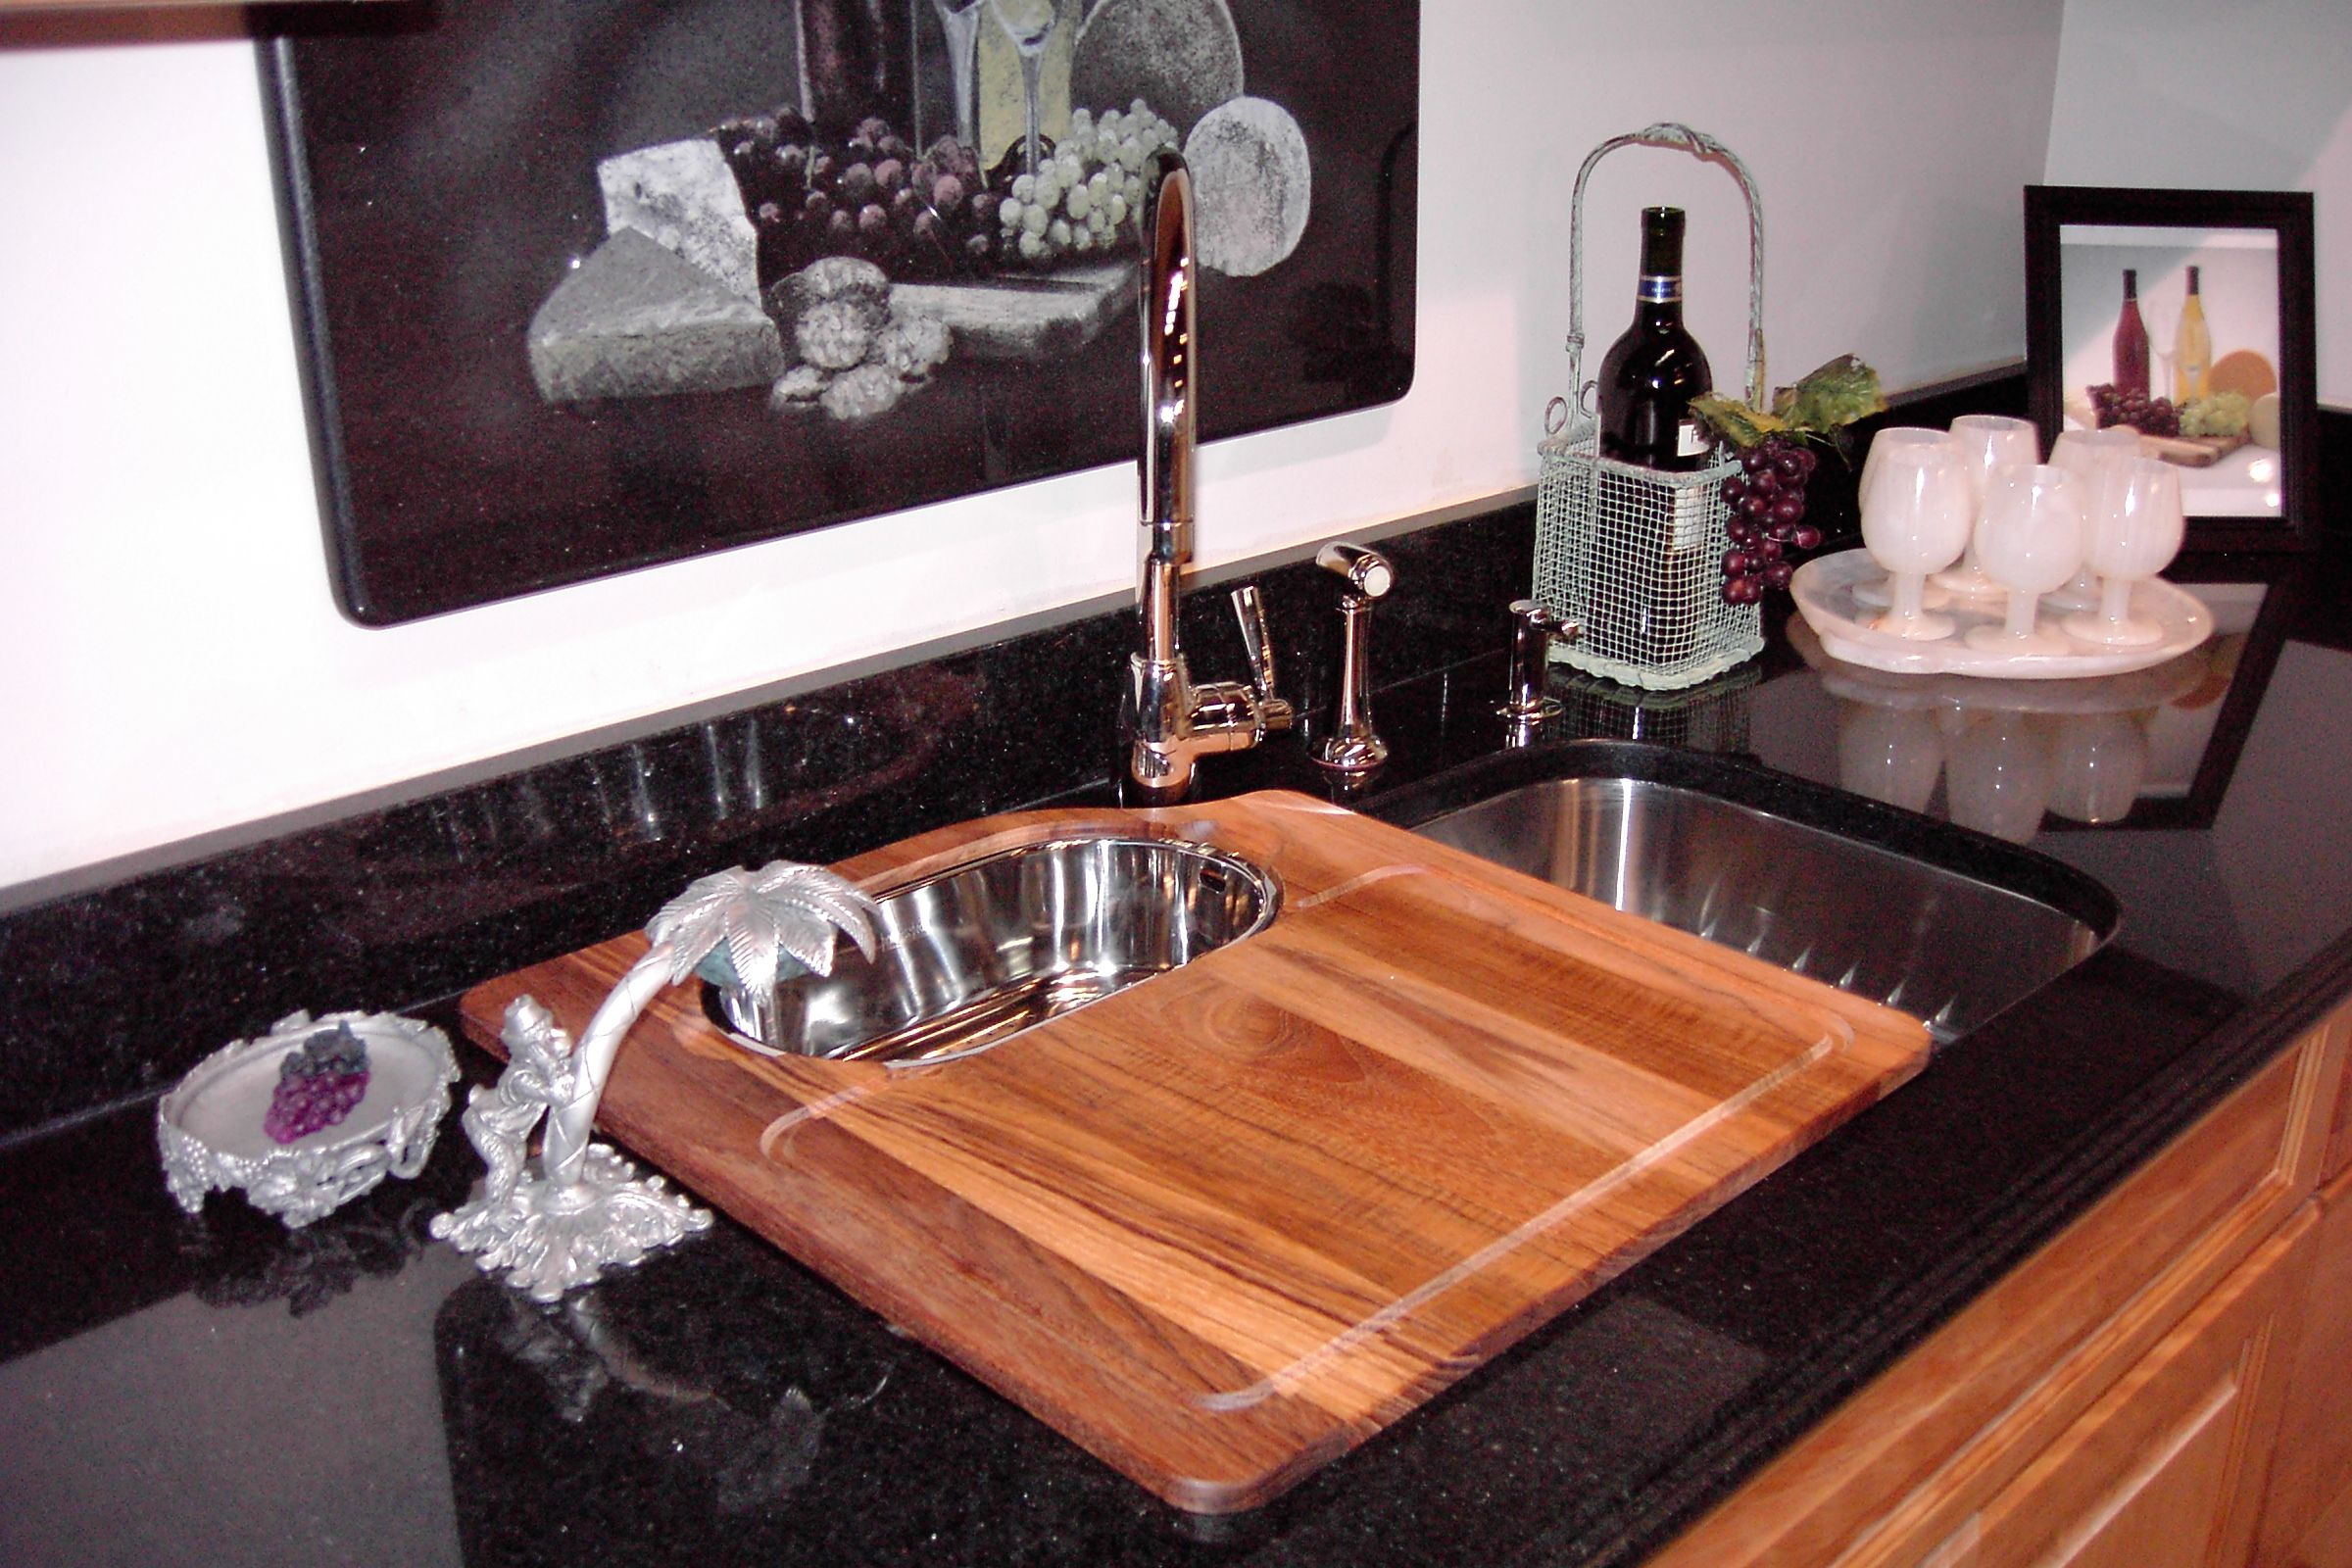 Good Accessories, Franke Orca Sink Accessories, Drain Baskets, Colanders And  Grids For The Orca   And Sinks By Franke